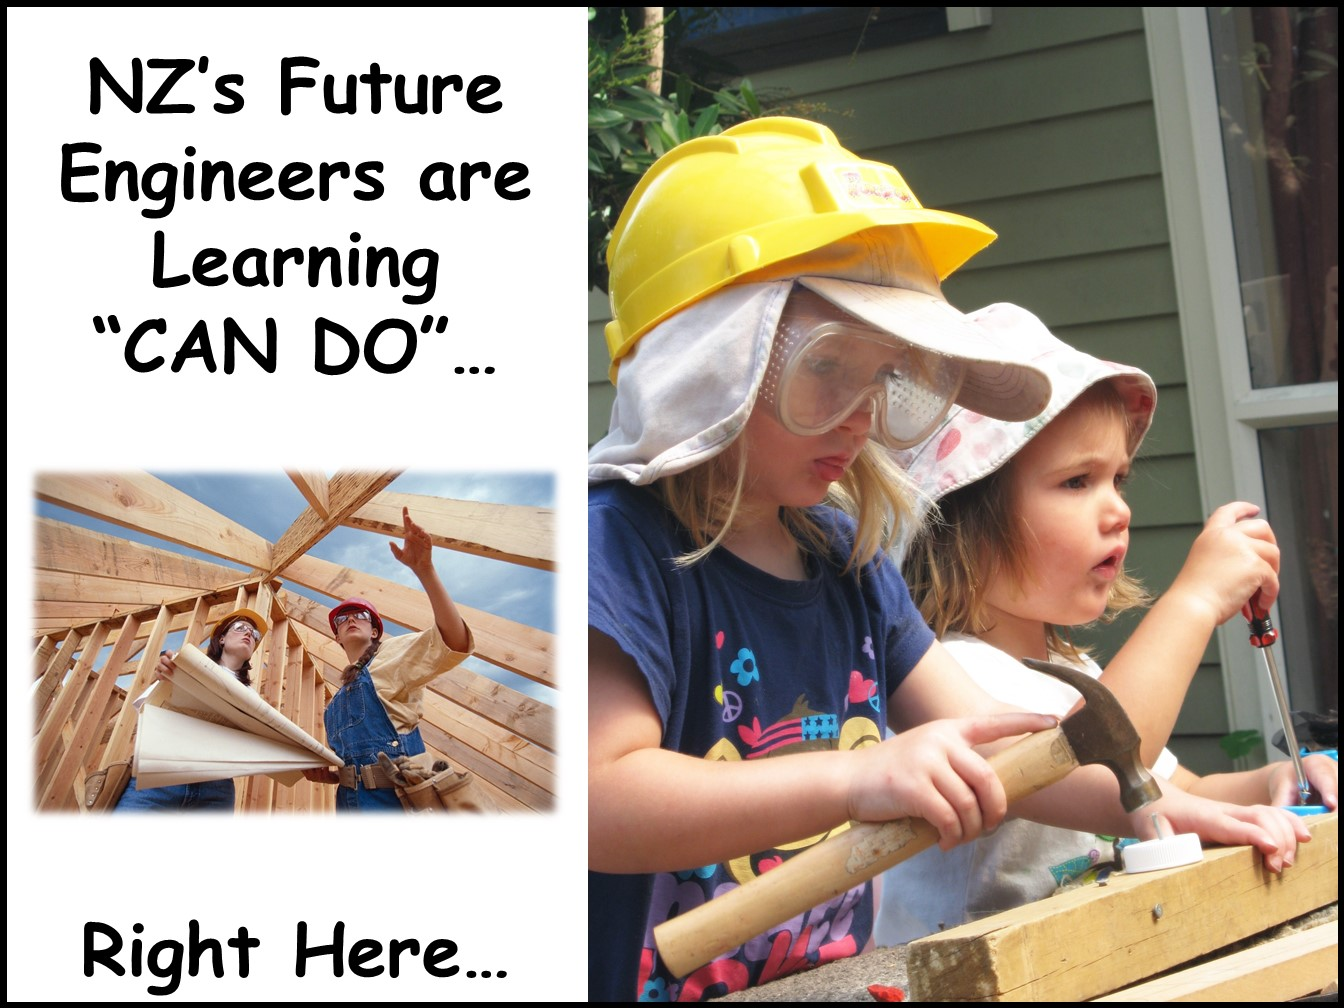 Kindergarten all about children, nurture, discoveries, ratios, meals and giving the best start near Glendene, Avondale, Huapai, New Lynn, Swanson, Kelston, Titirangi, Kumeu, Waterview, Henderson, Hobsonville, Whenuapai, Te Atatu, Glen Eden, Westgate, Massey, Huia, Laingholm, Waimauku